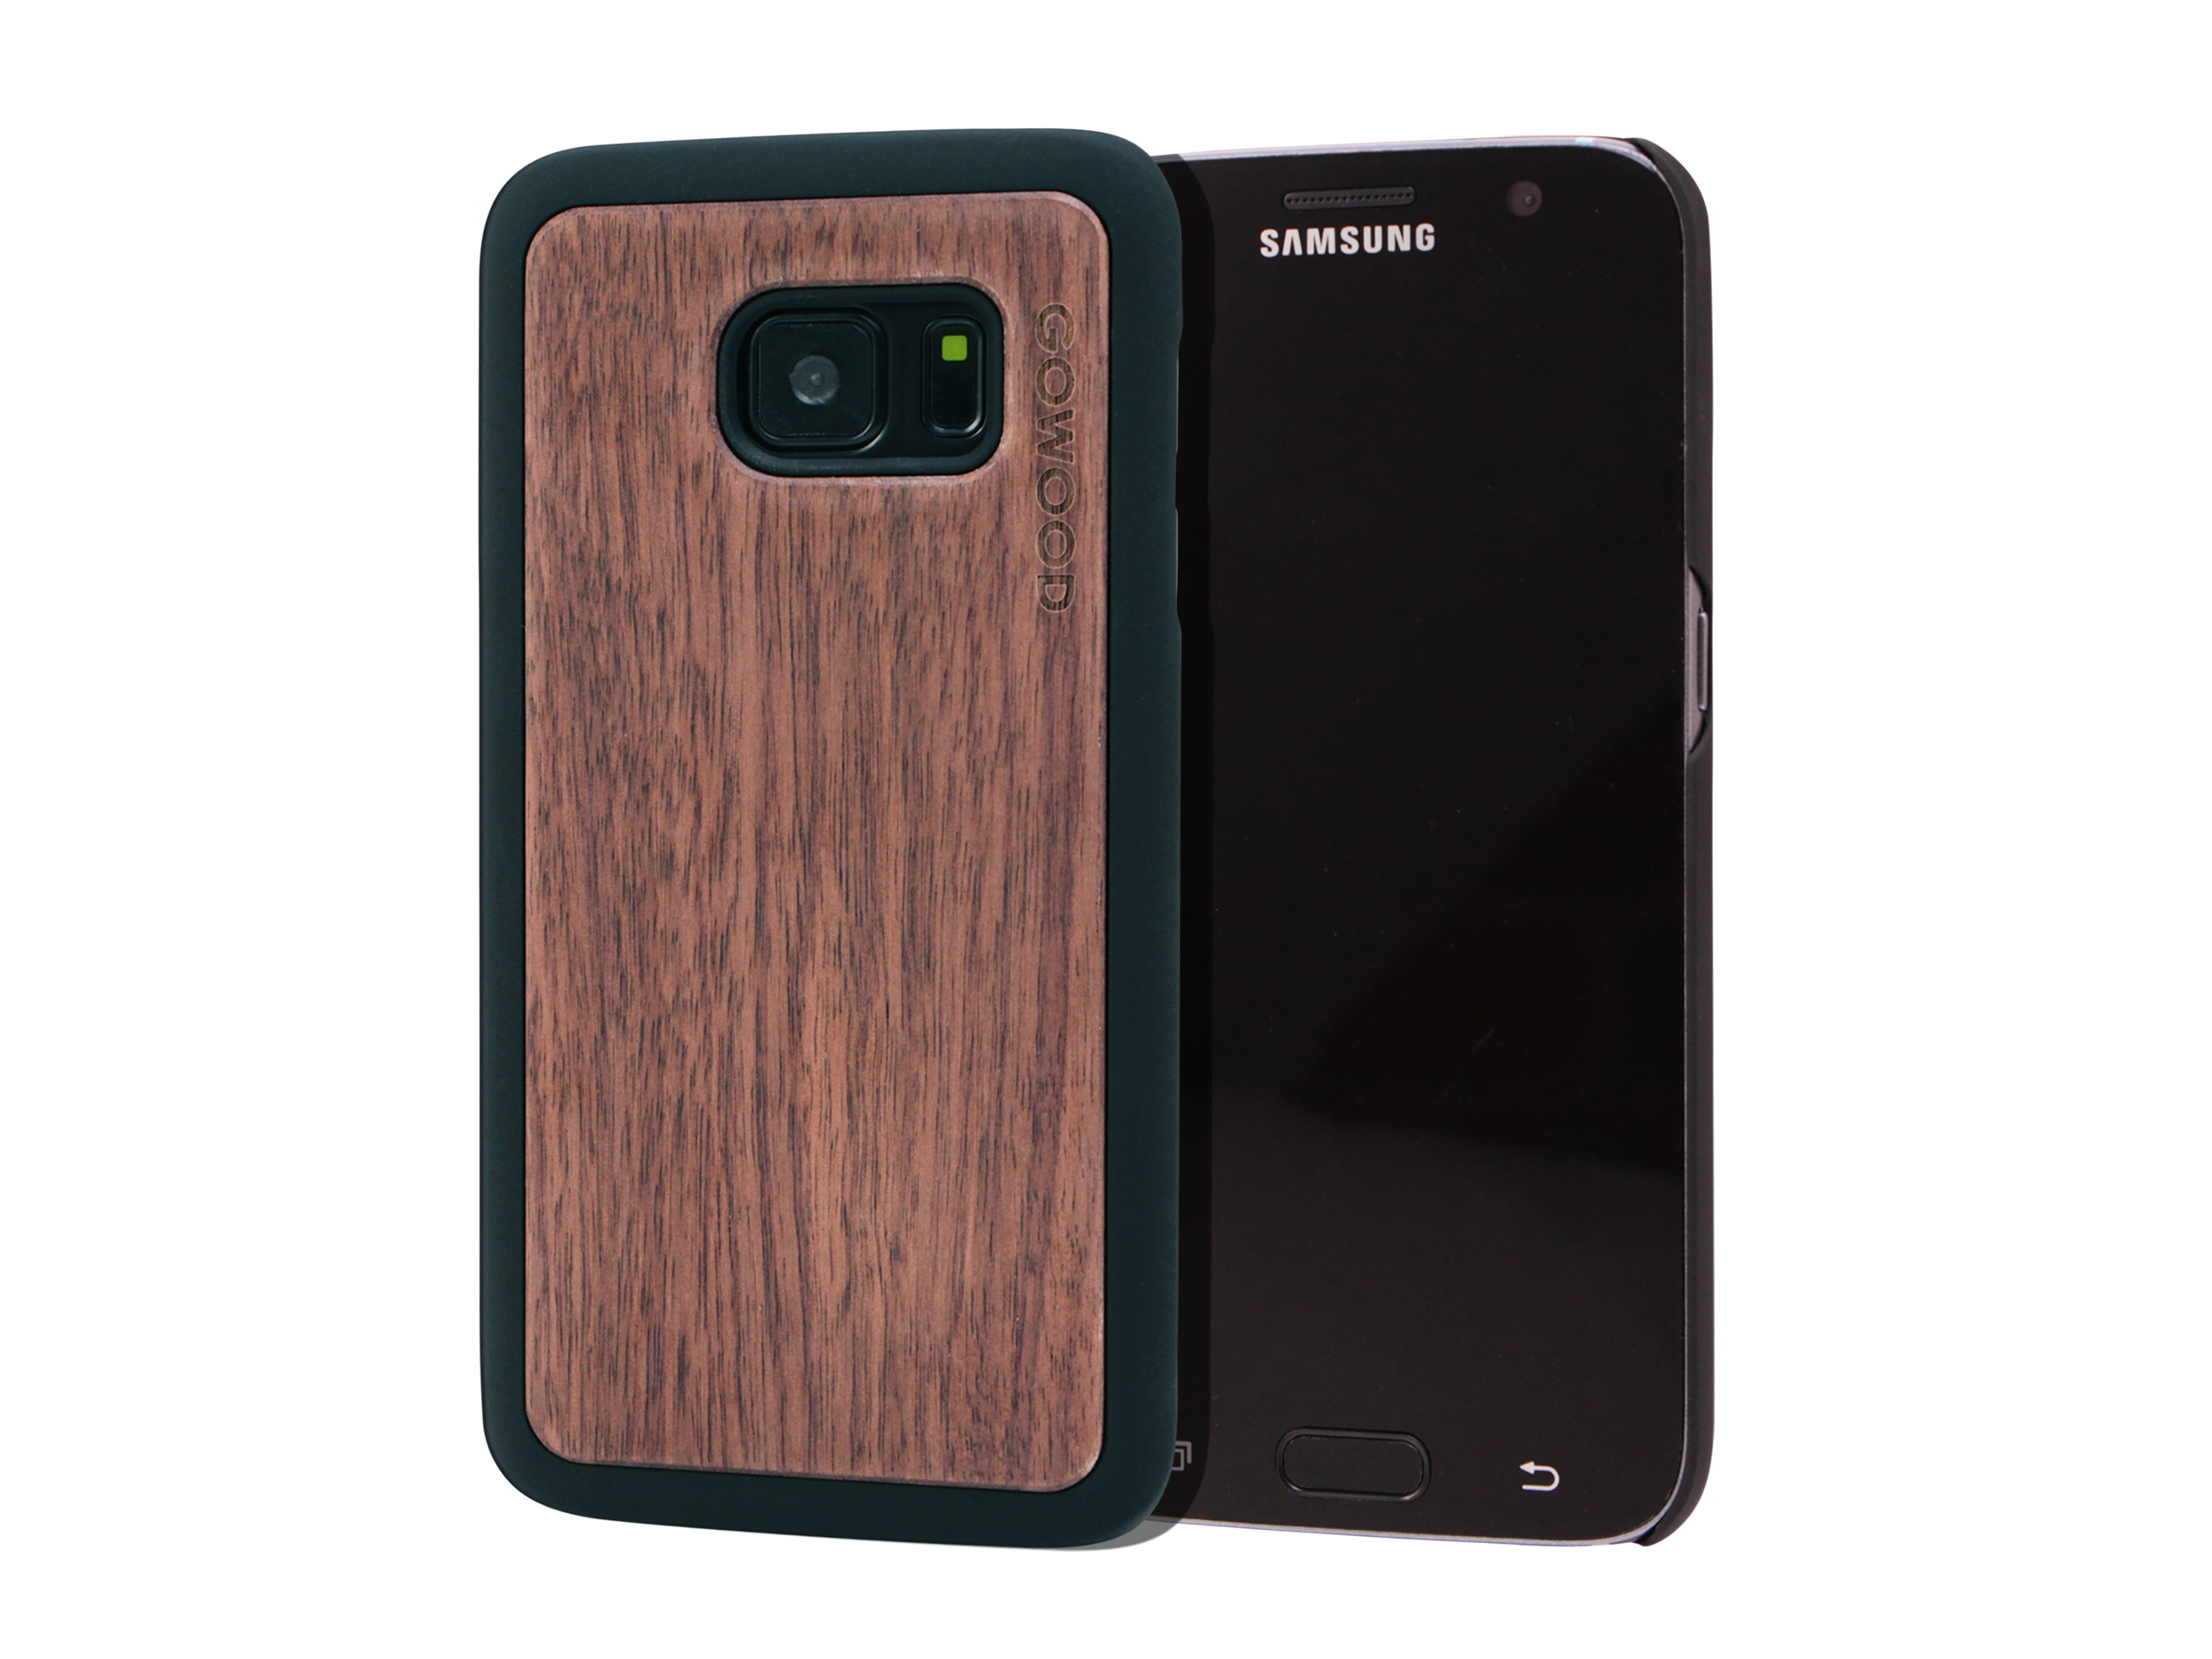 Samsung Galaxy S7 wood case walnut main